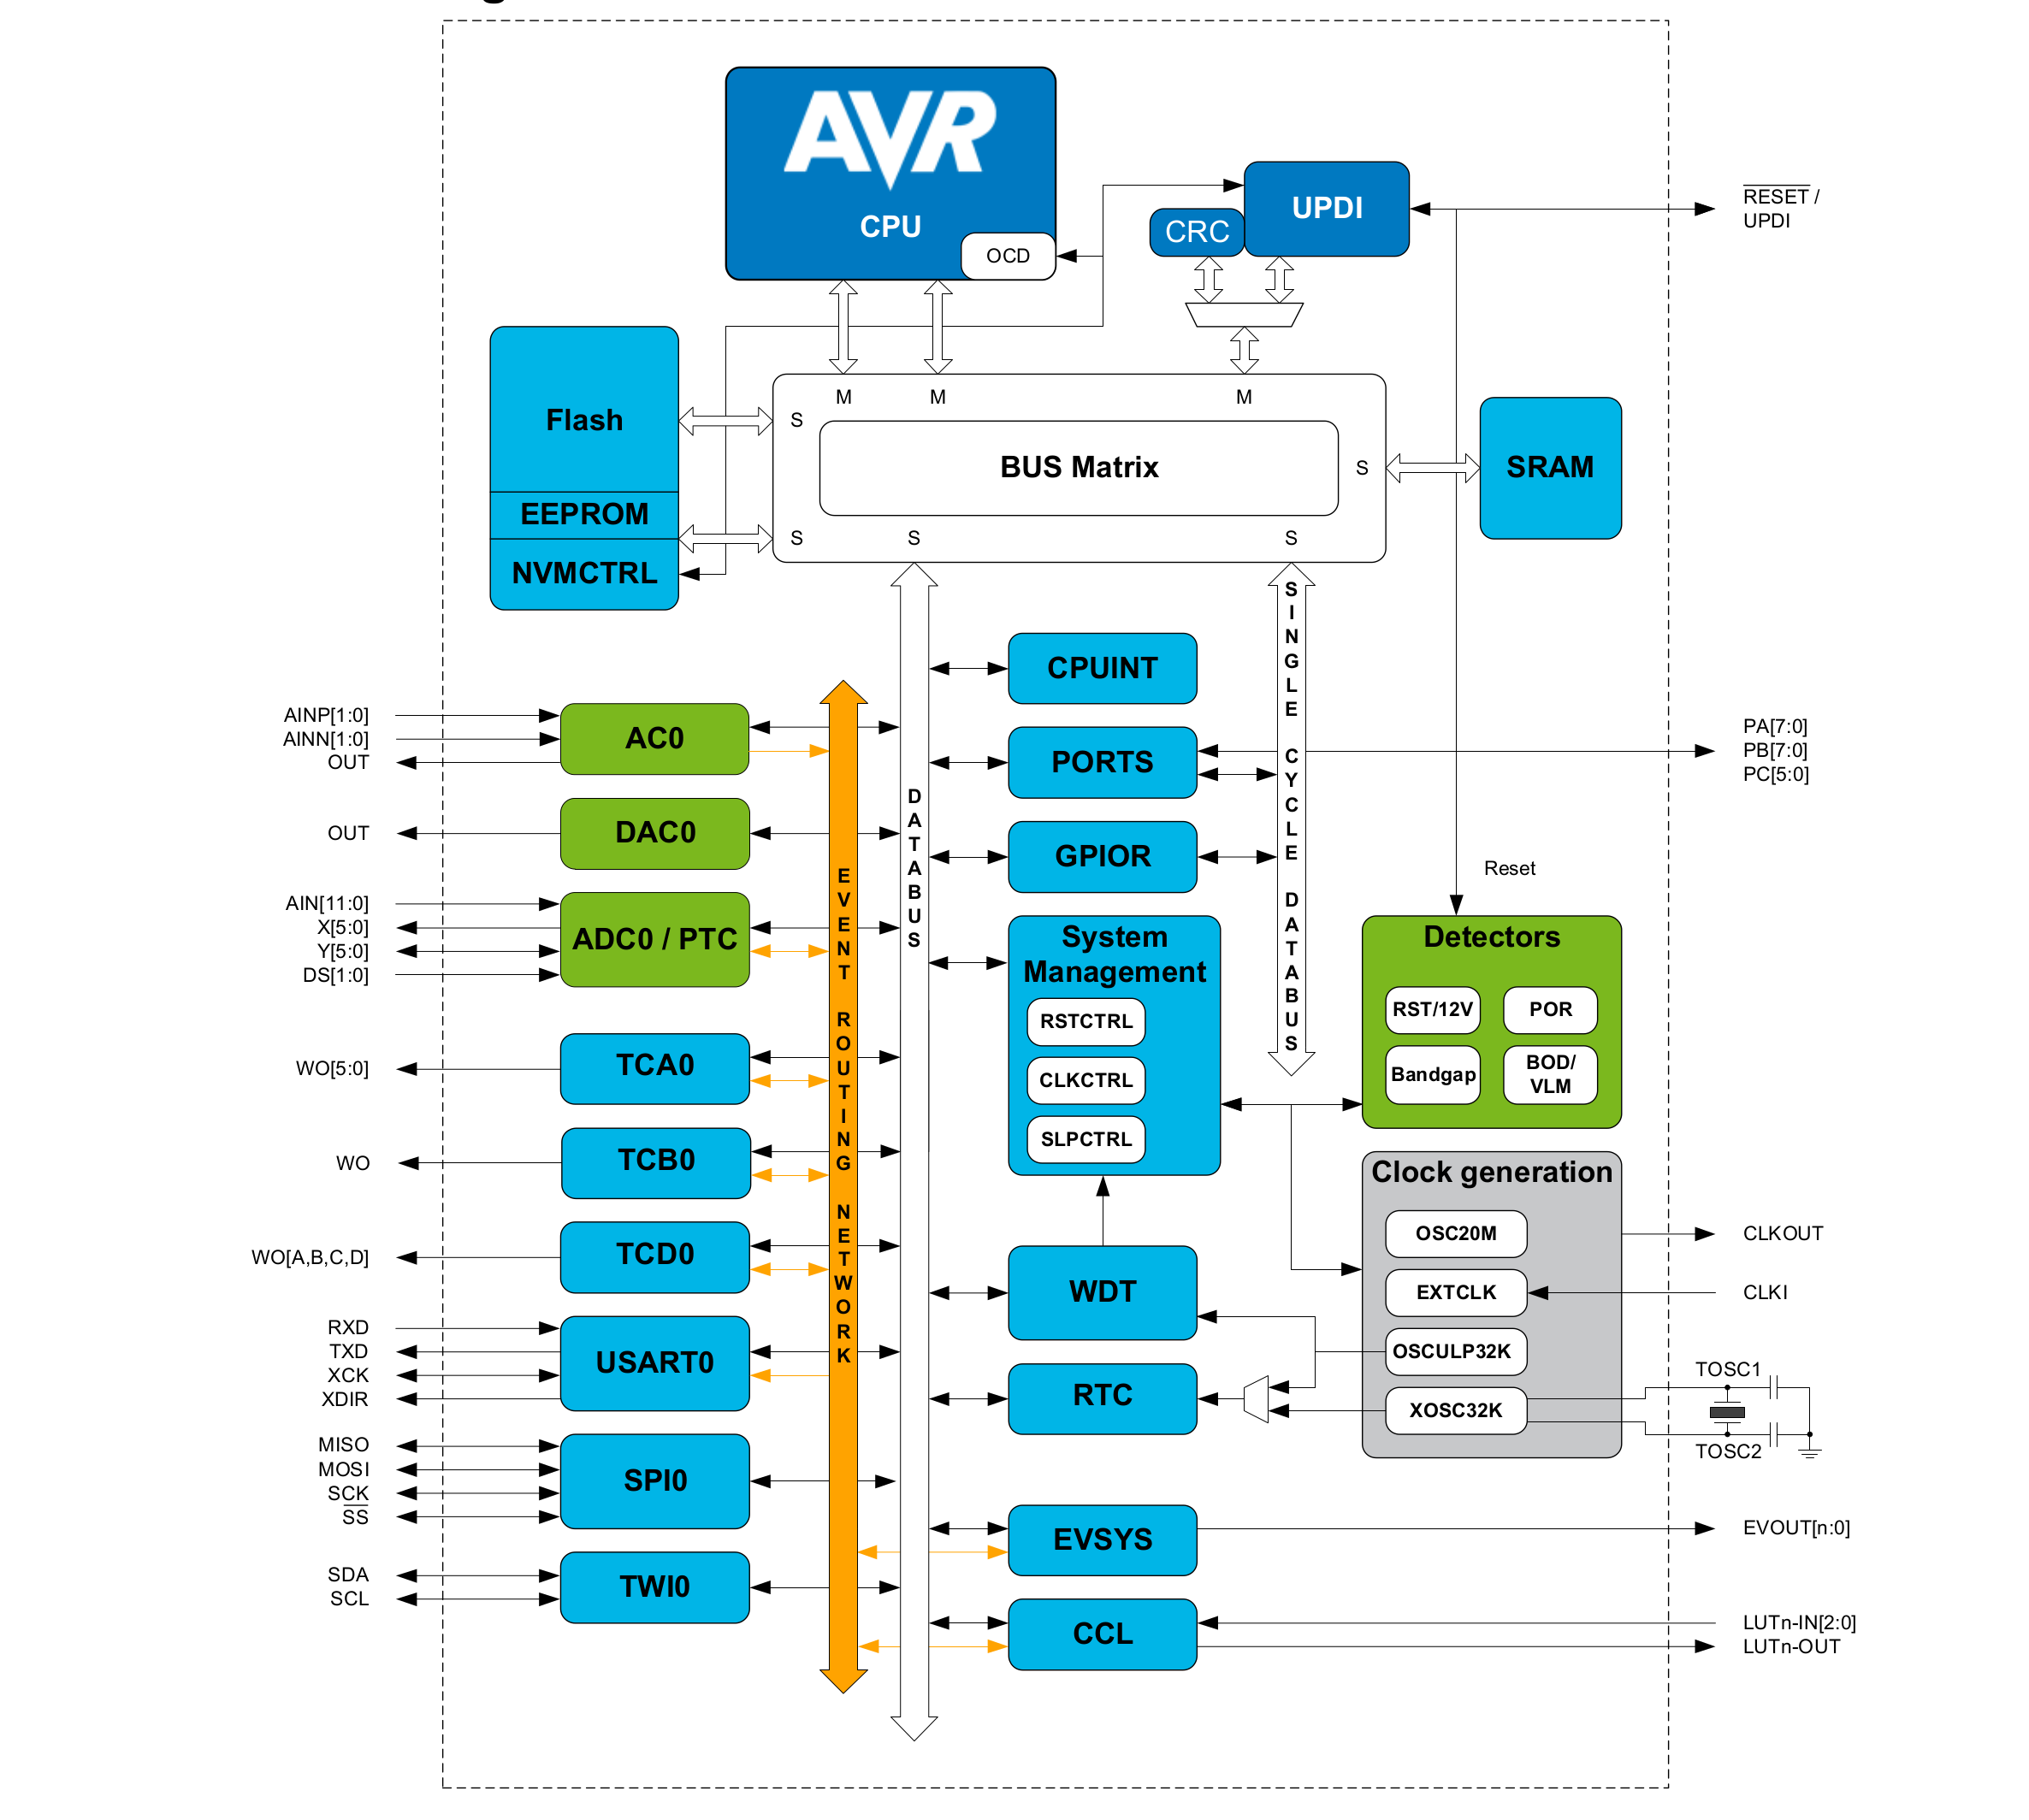 microchip atmel attiny417 814 816 817 tinyavr mcus include independent peripherals cips